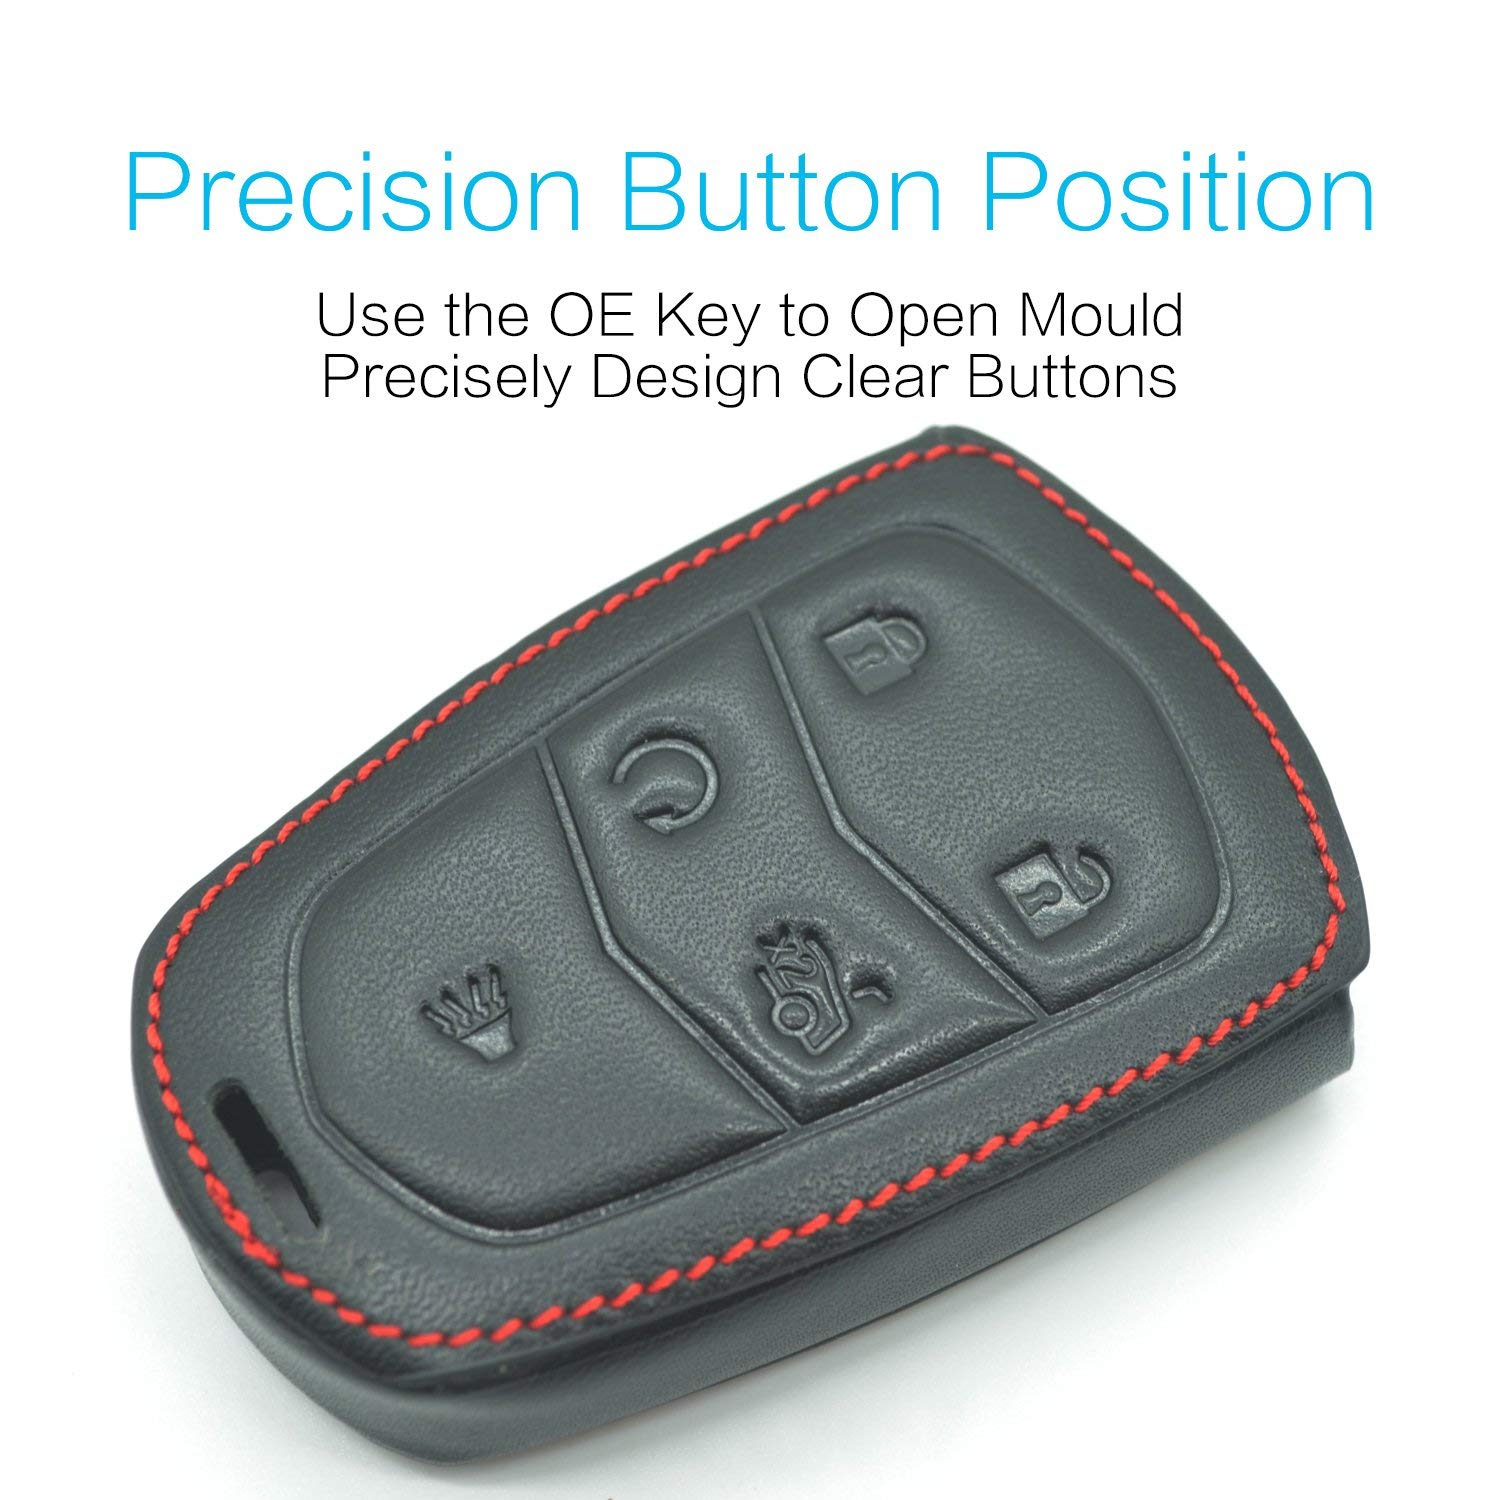 Genuine Leather 2000-2018 Cadillac Escalade Cts SRX Xt5 ATS STS CT6 Smart Prox Remote Key Fob Cover Case Holder Only for 5 and 4 3 Buttons